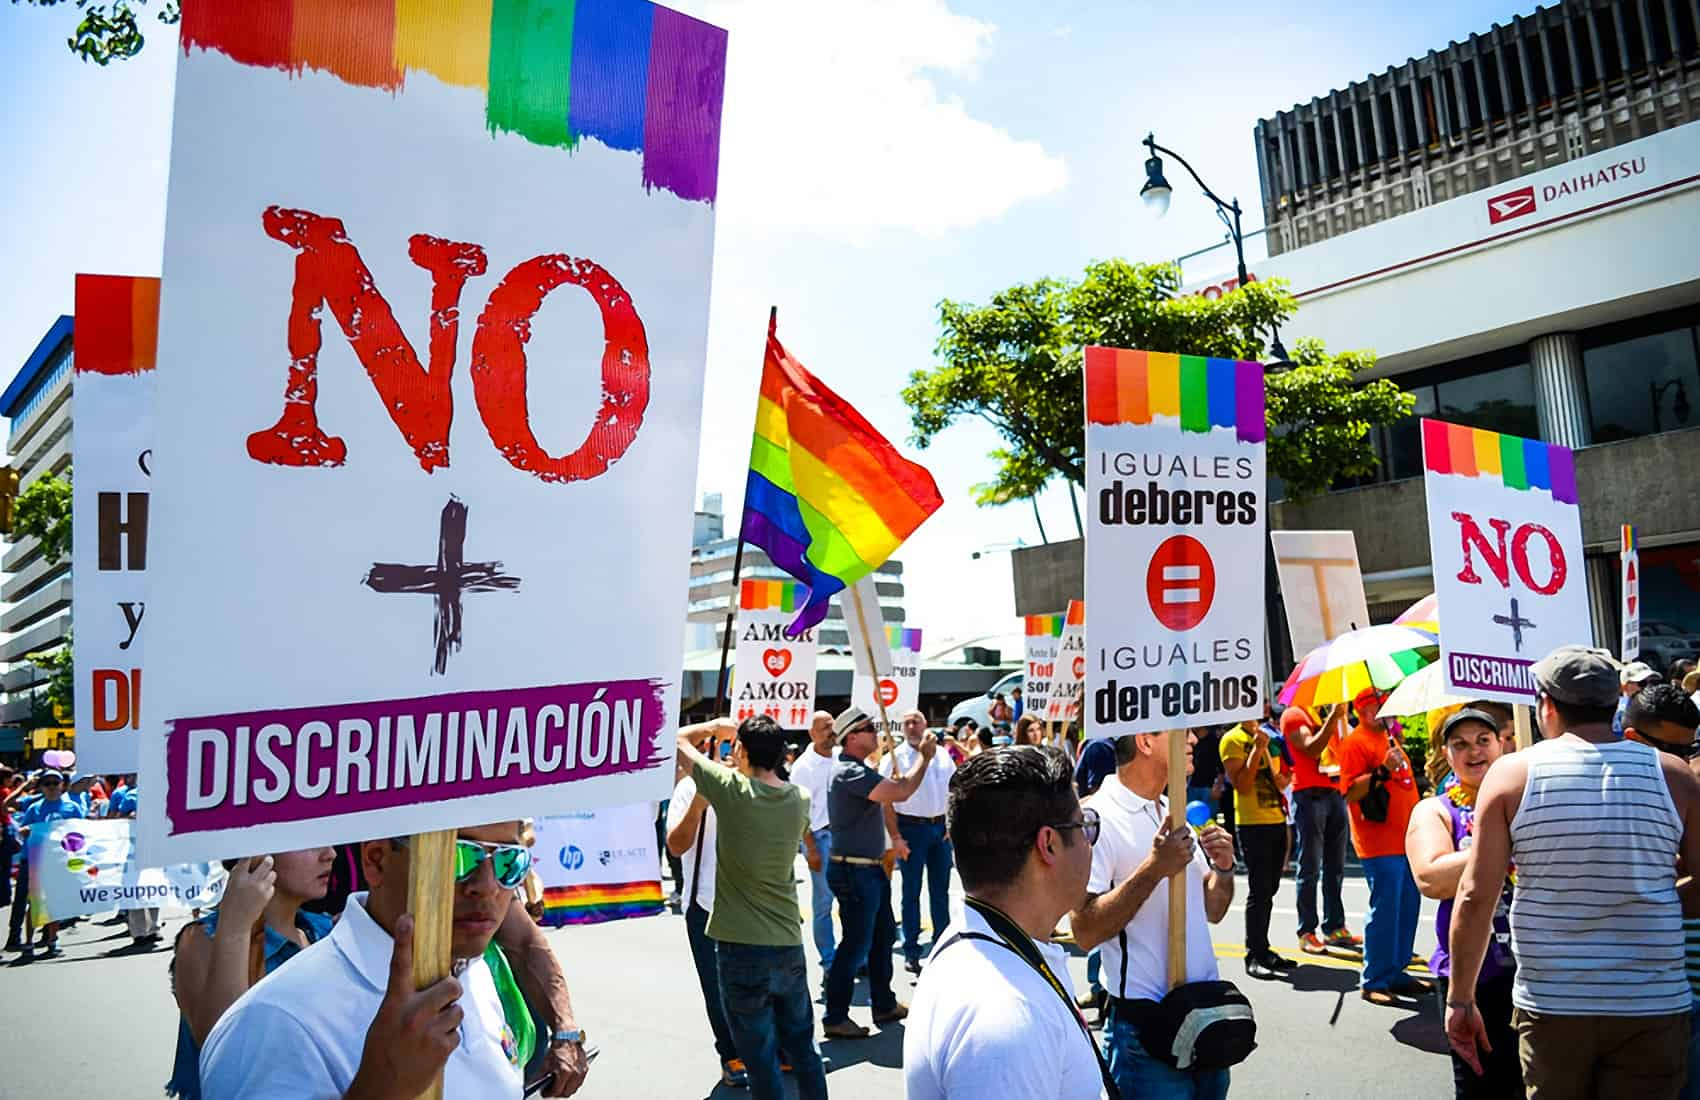 Almost 60 percent of people surveyed by researchers from the University of Costa  Rica in 2017 oppose same-sex marriage. (Alberto Font/The Tico Times)